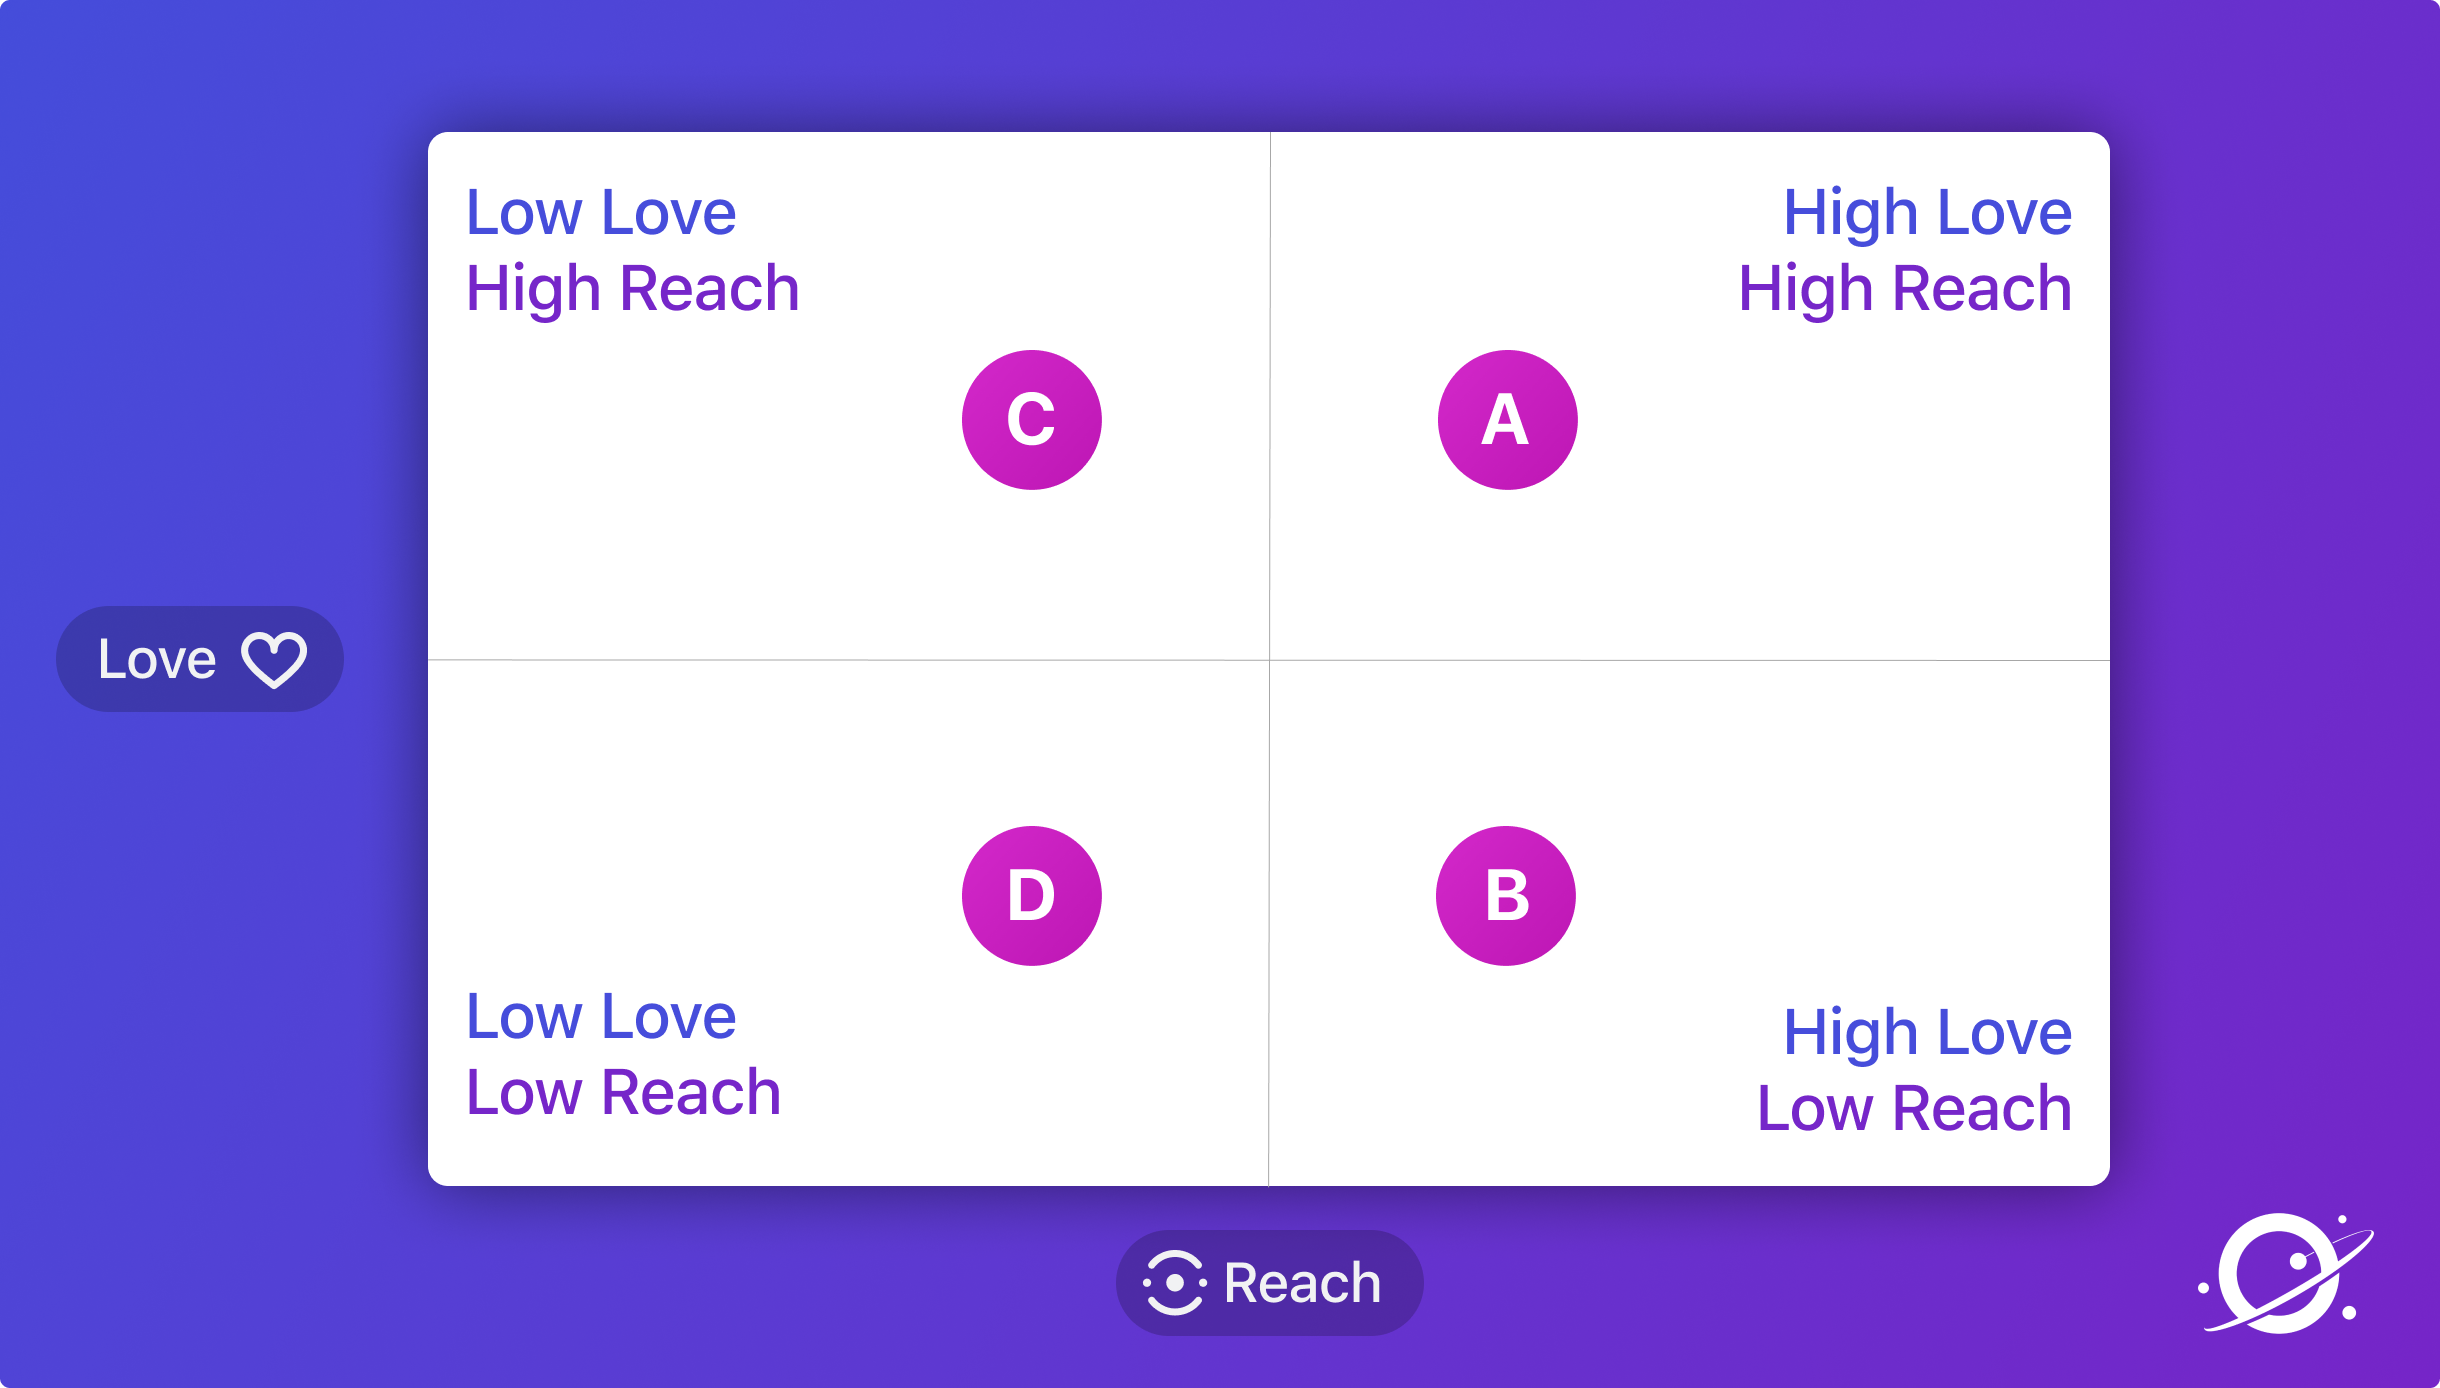 2x2 grid of love and reach from the Orbit Model